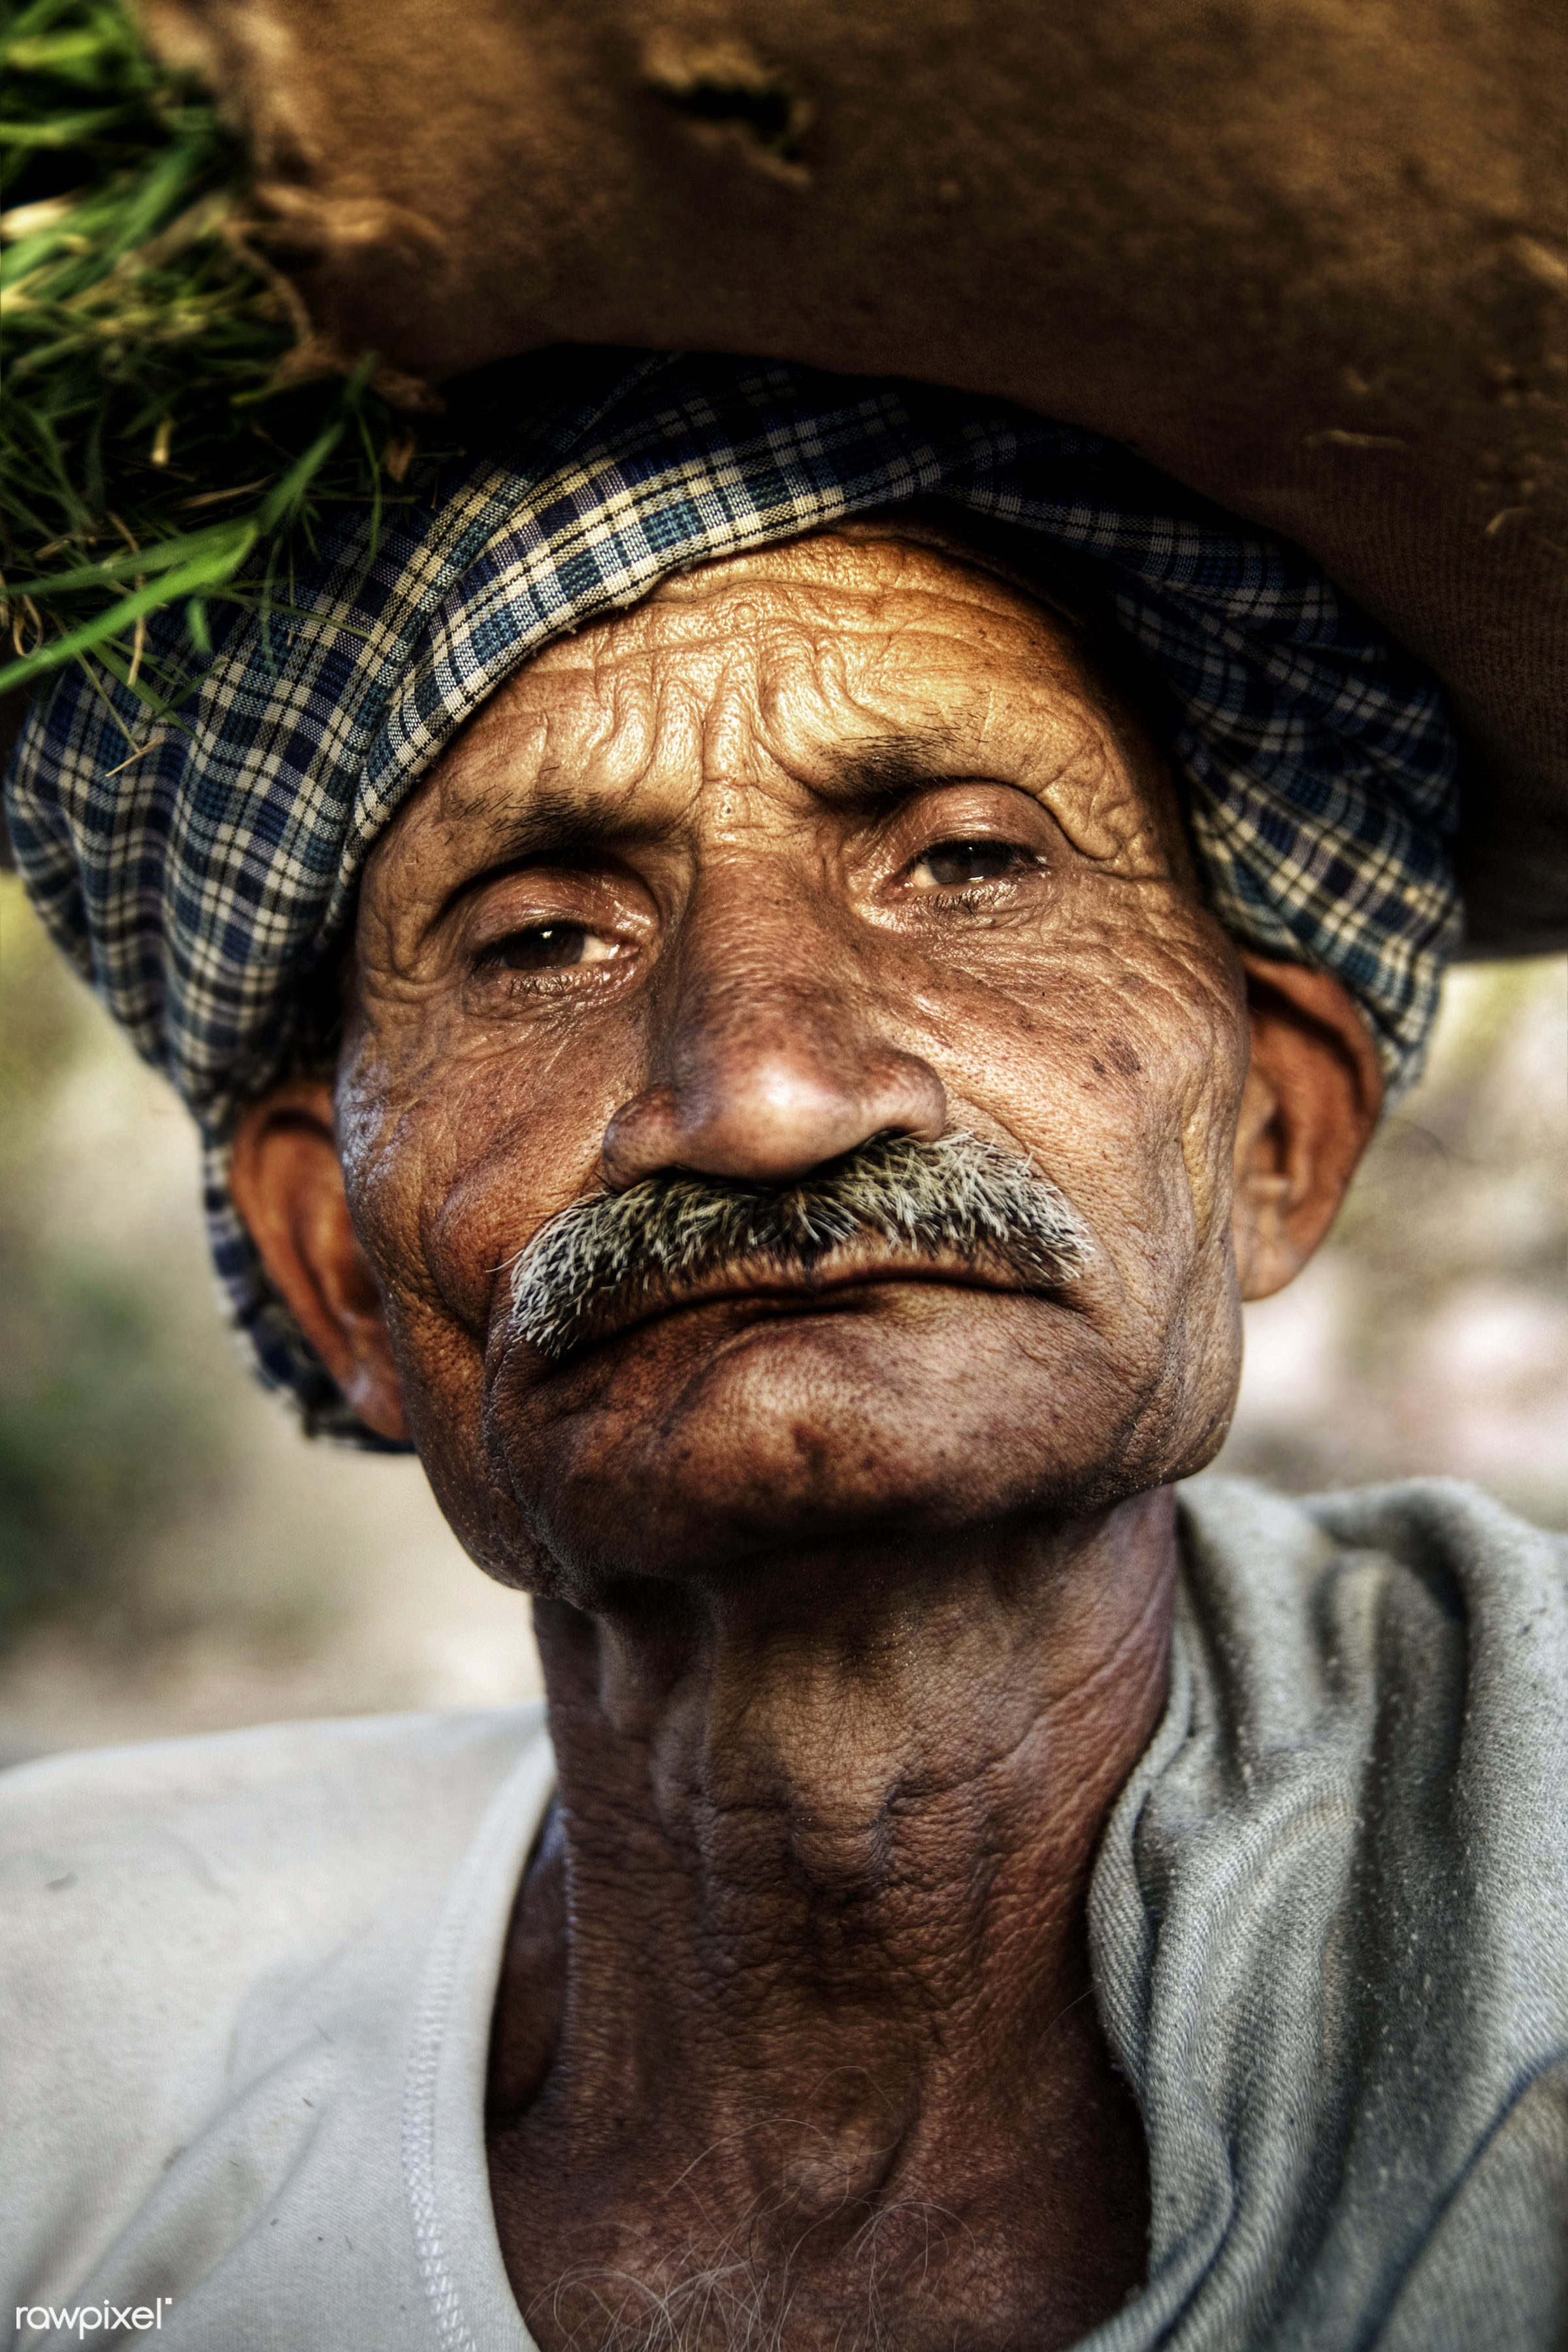 Portrait of a serious Indian man - carrying on the head, close-up, concepts and ideas, despair, facial hair, farmer, grumpy...